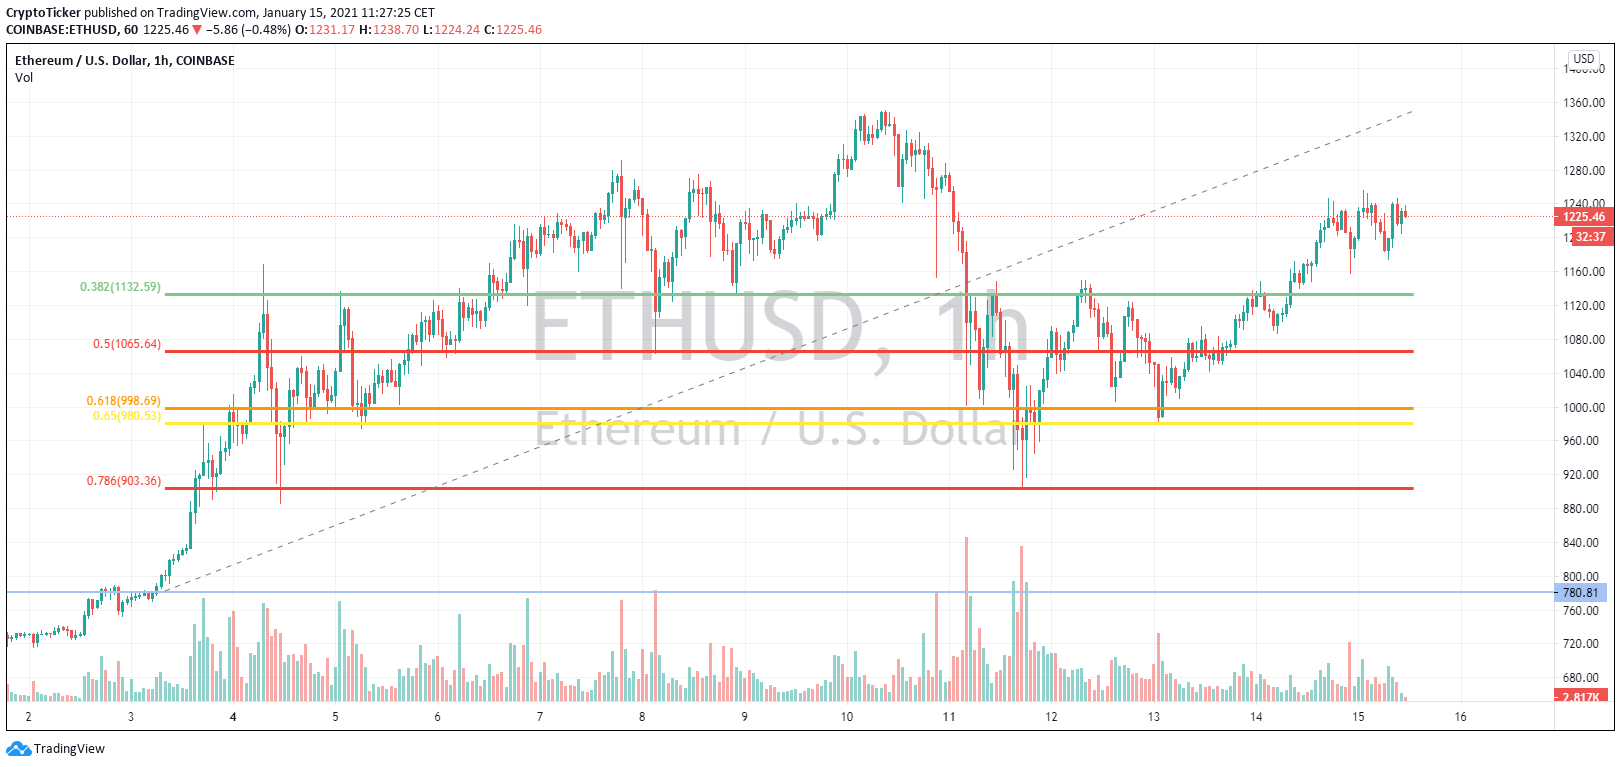 ETH/USD 1-Hour chart - Ether prices following the Fibonacci Retracement levels